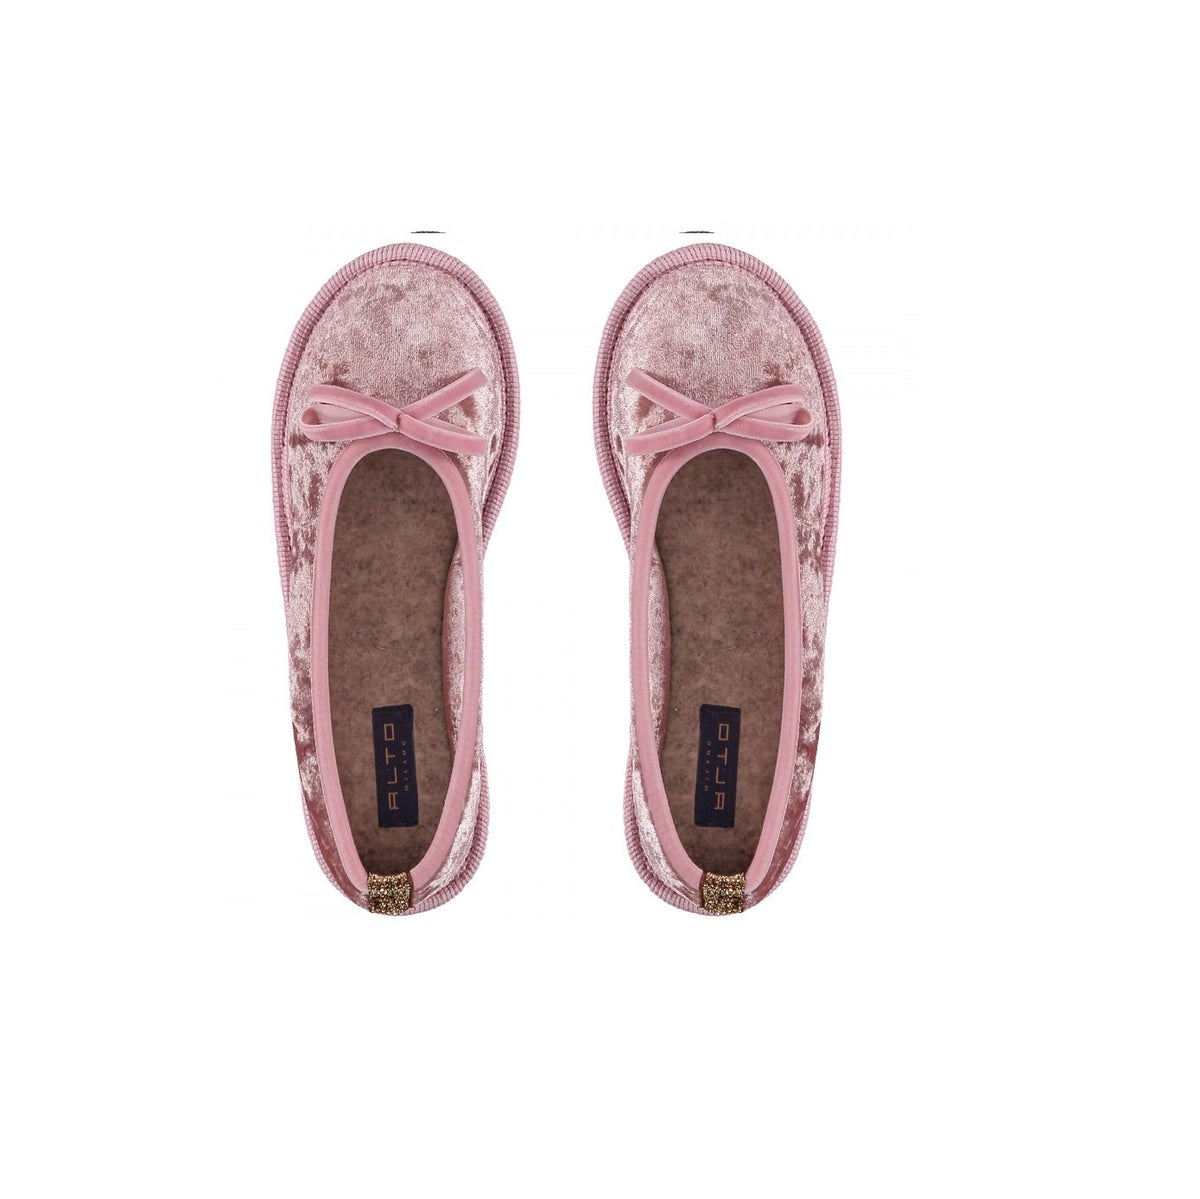 Image of Ballerina Slippers (multiple colors)